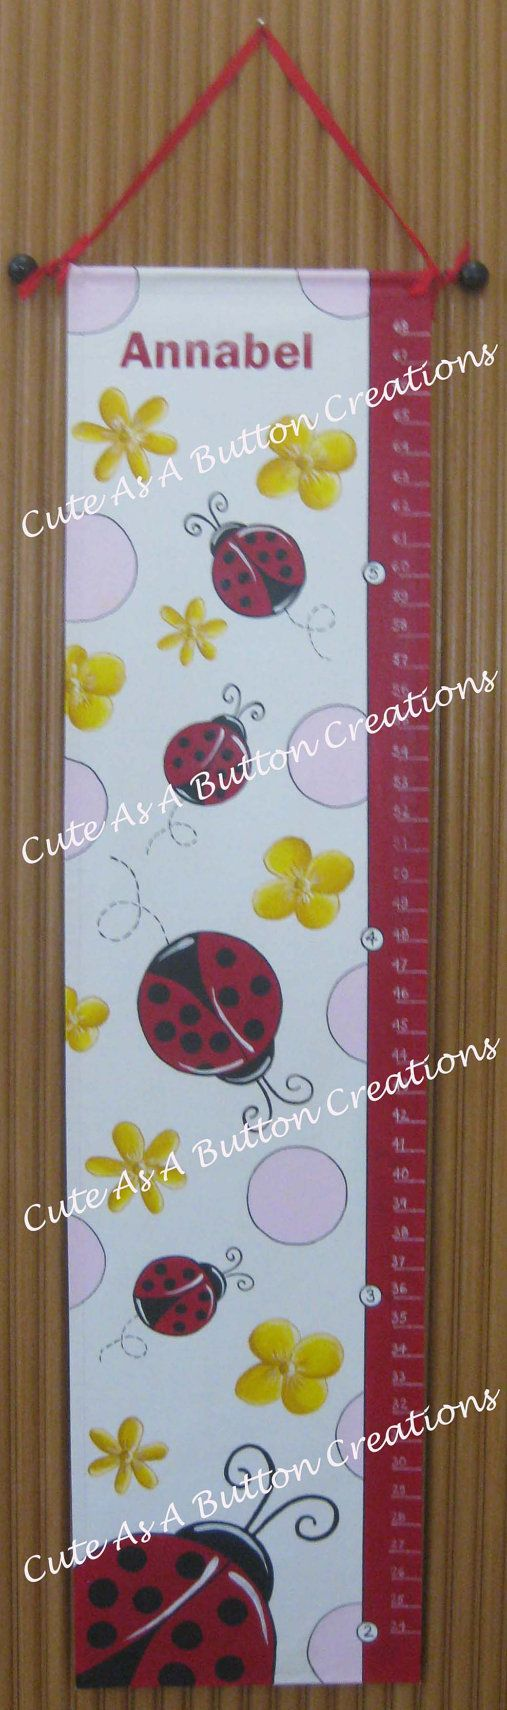 72 best growth chart images on pinterest child room babies rooms ladybug growth chart geenschuldenfo Image collections